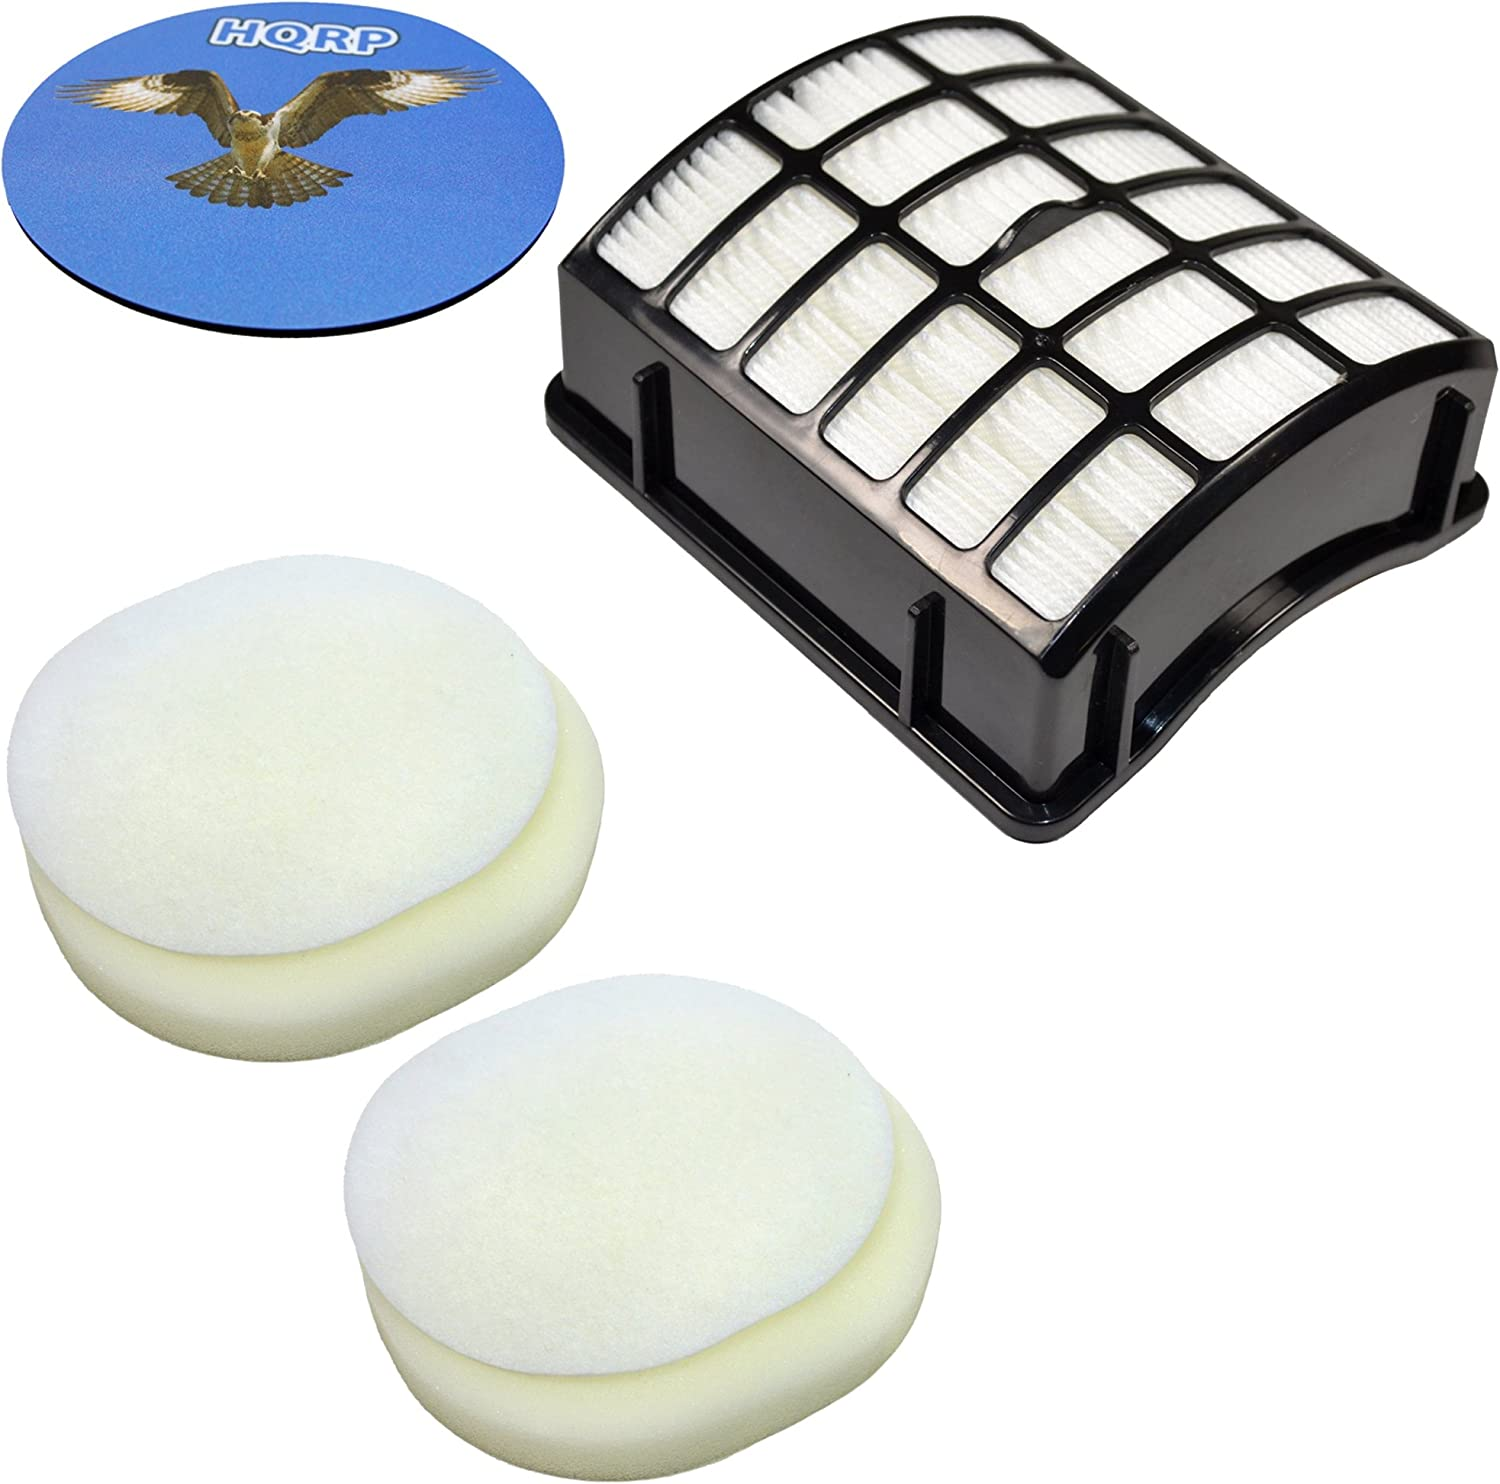 HQRP Kit: Two Pre-Motor Filters and Post Motor Filter Compatible with Shark NV-70 NV-80 NV-90 UV-420 XFF80 XFF8O XHF80 XHF8O Navigator Upright Vac Vacuum Cleaner Coaster